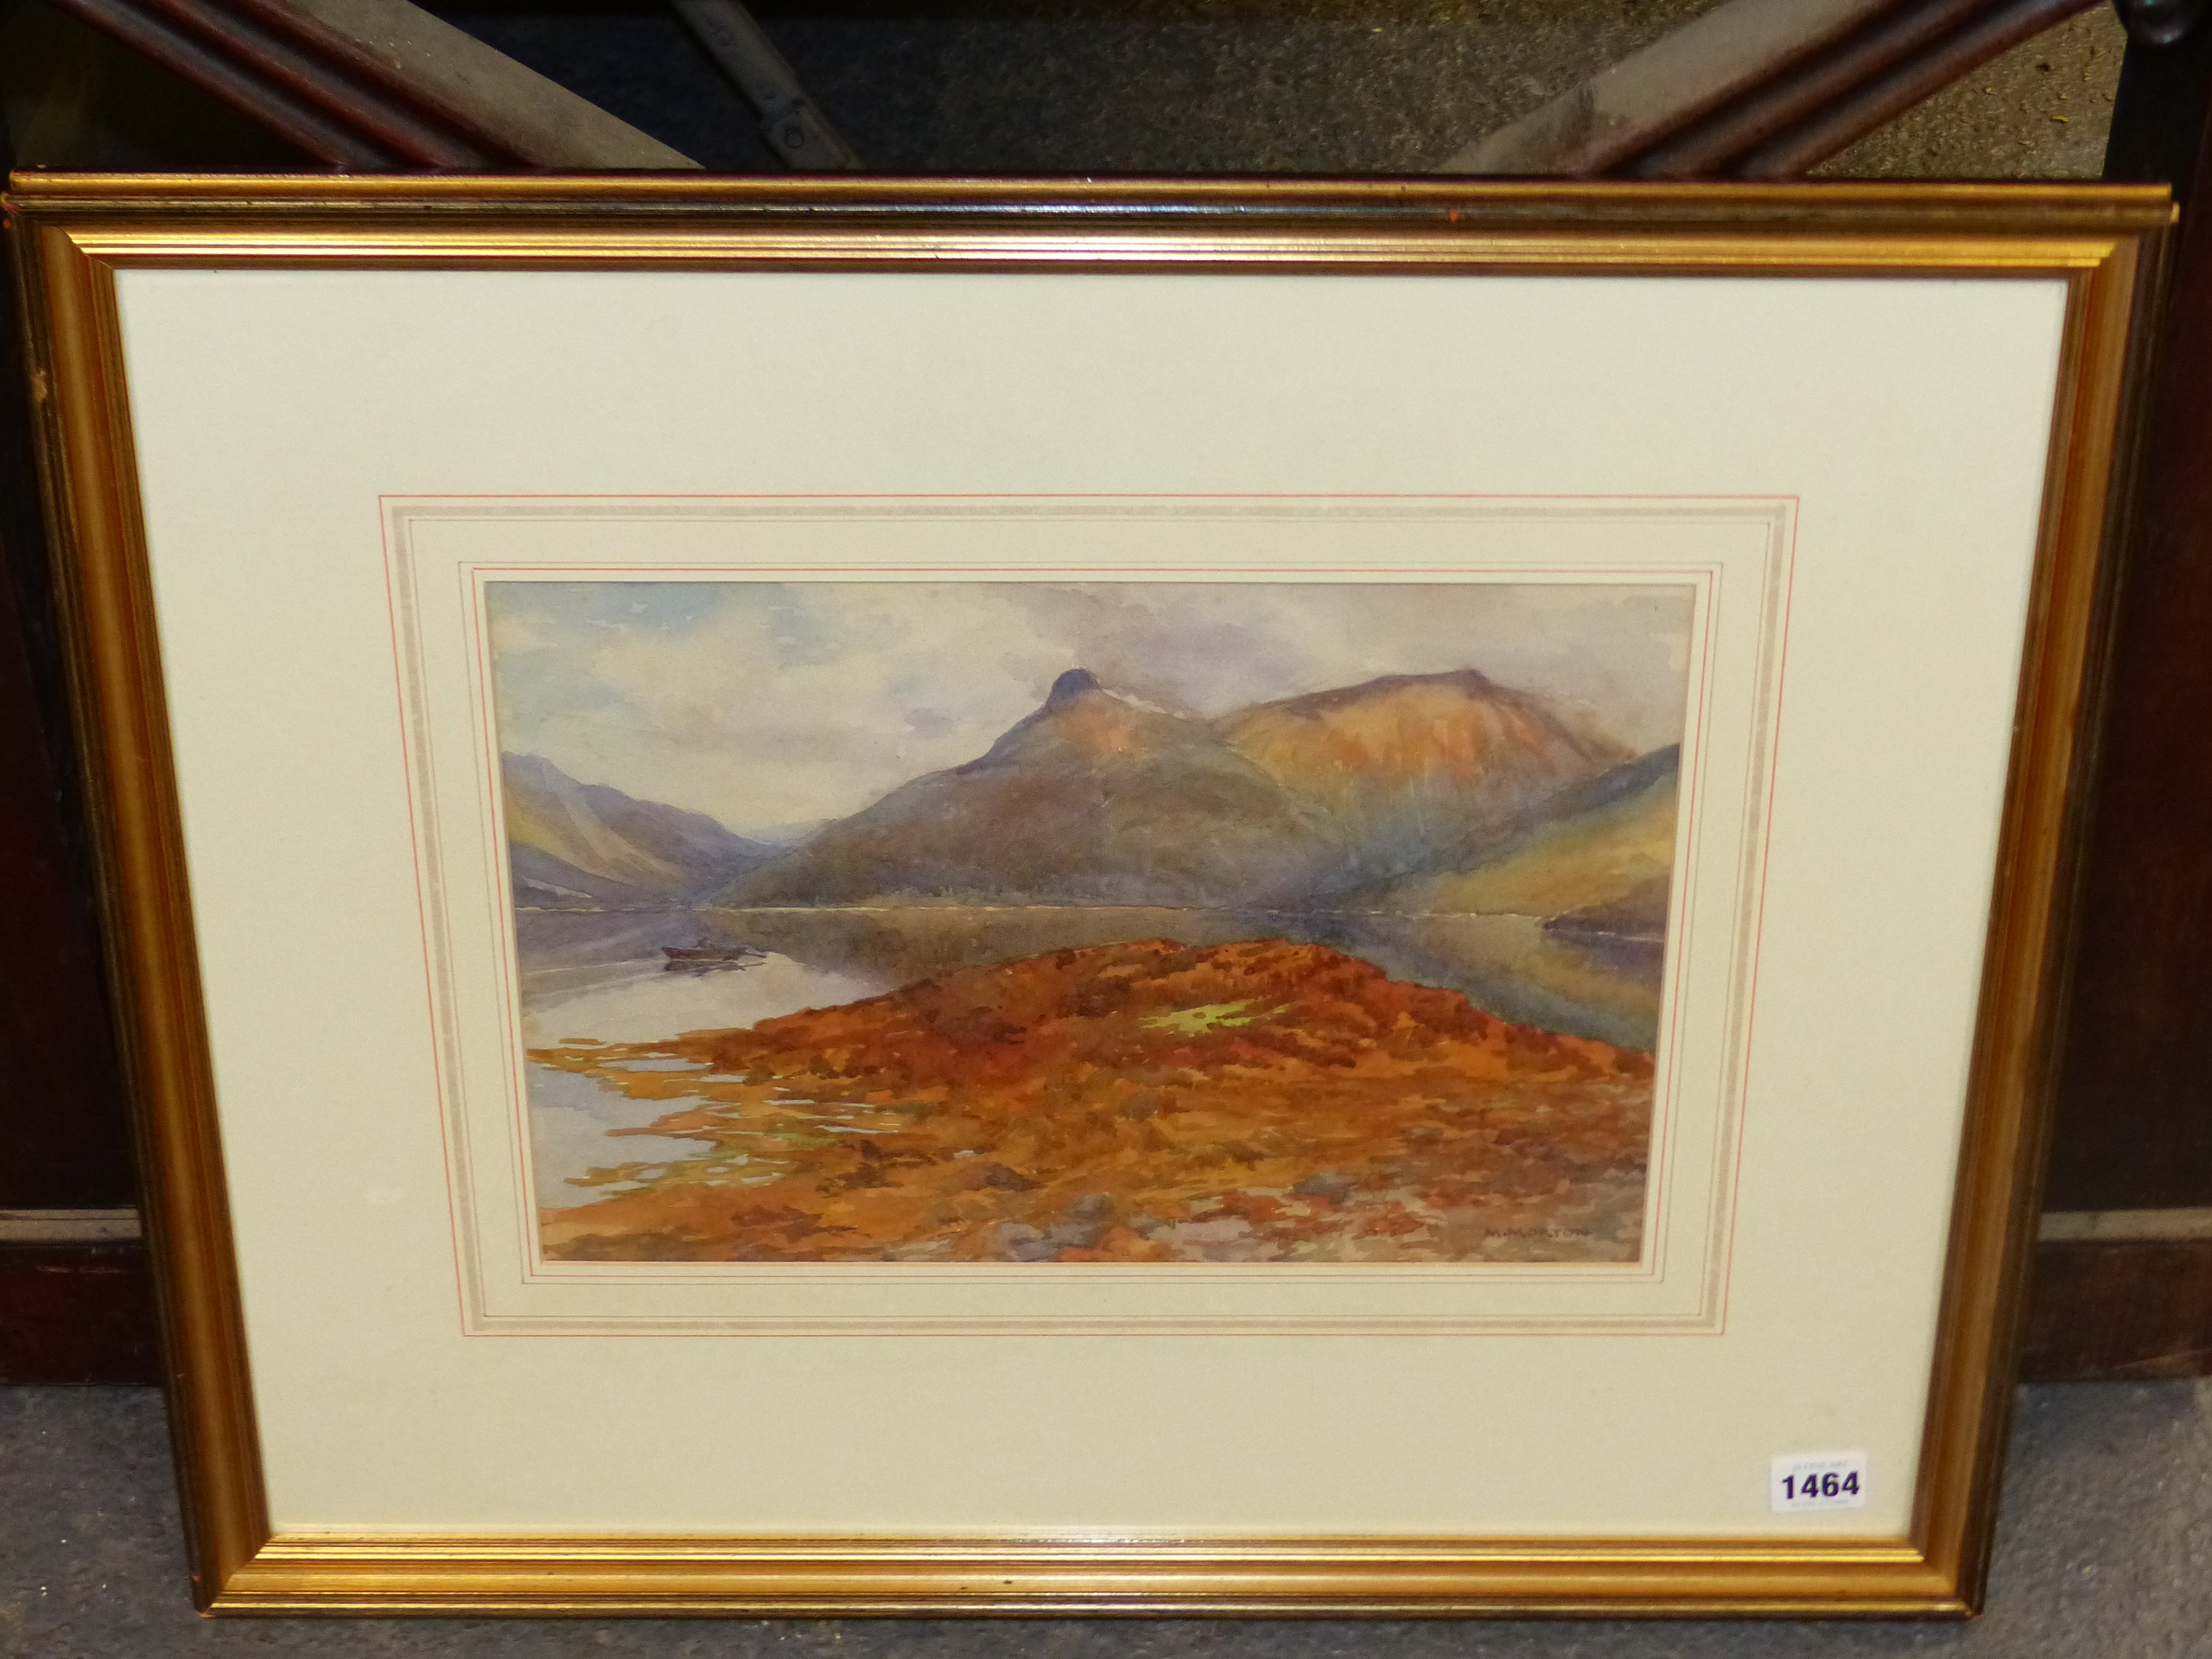 MARY MORTON (EARLY 20th C. ENGLISH SCHOOL) A HIGHLAND LAKE VIEW, SIGNED WATERCOLOUR. 24 x 35cms - Image 3 of 7